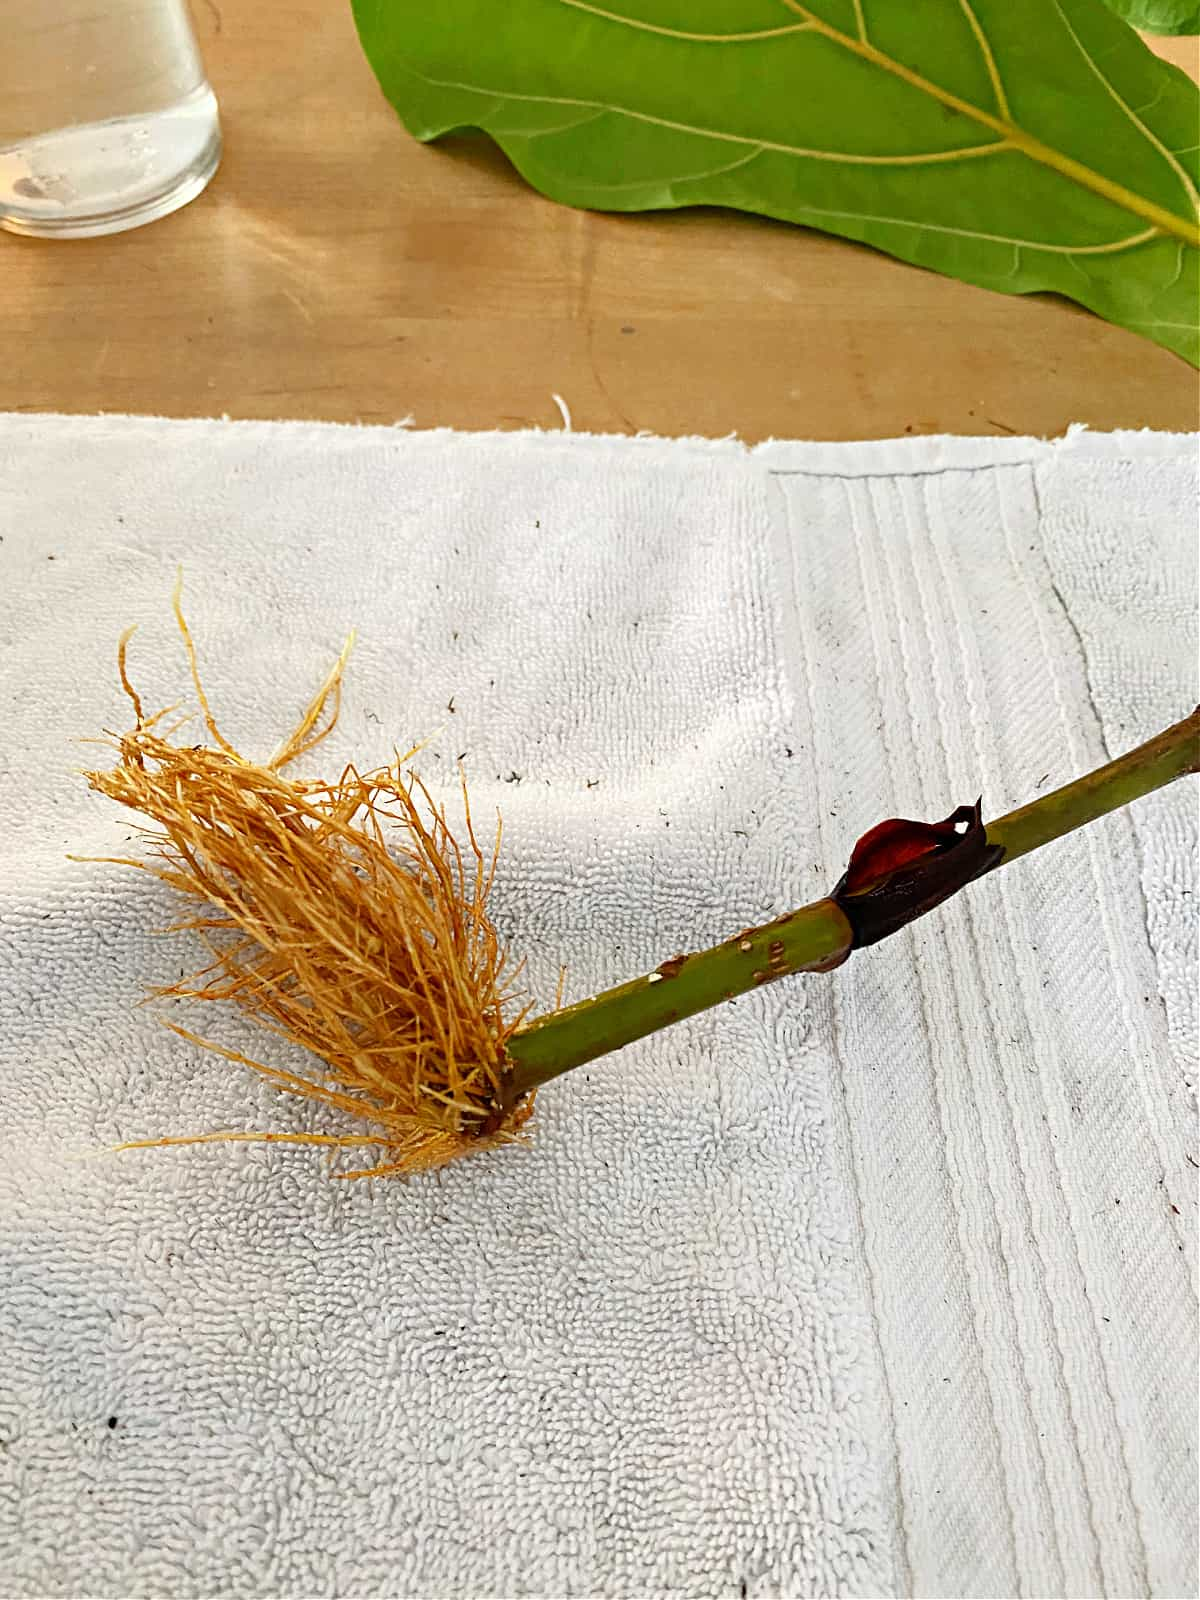 roots of propagated fiddle leaf fig stem